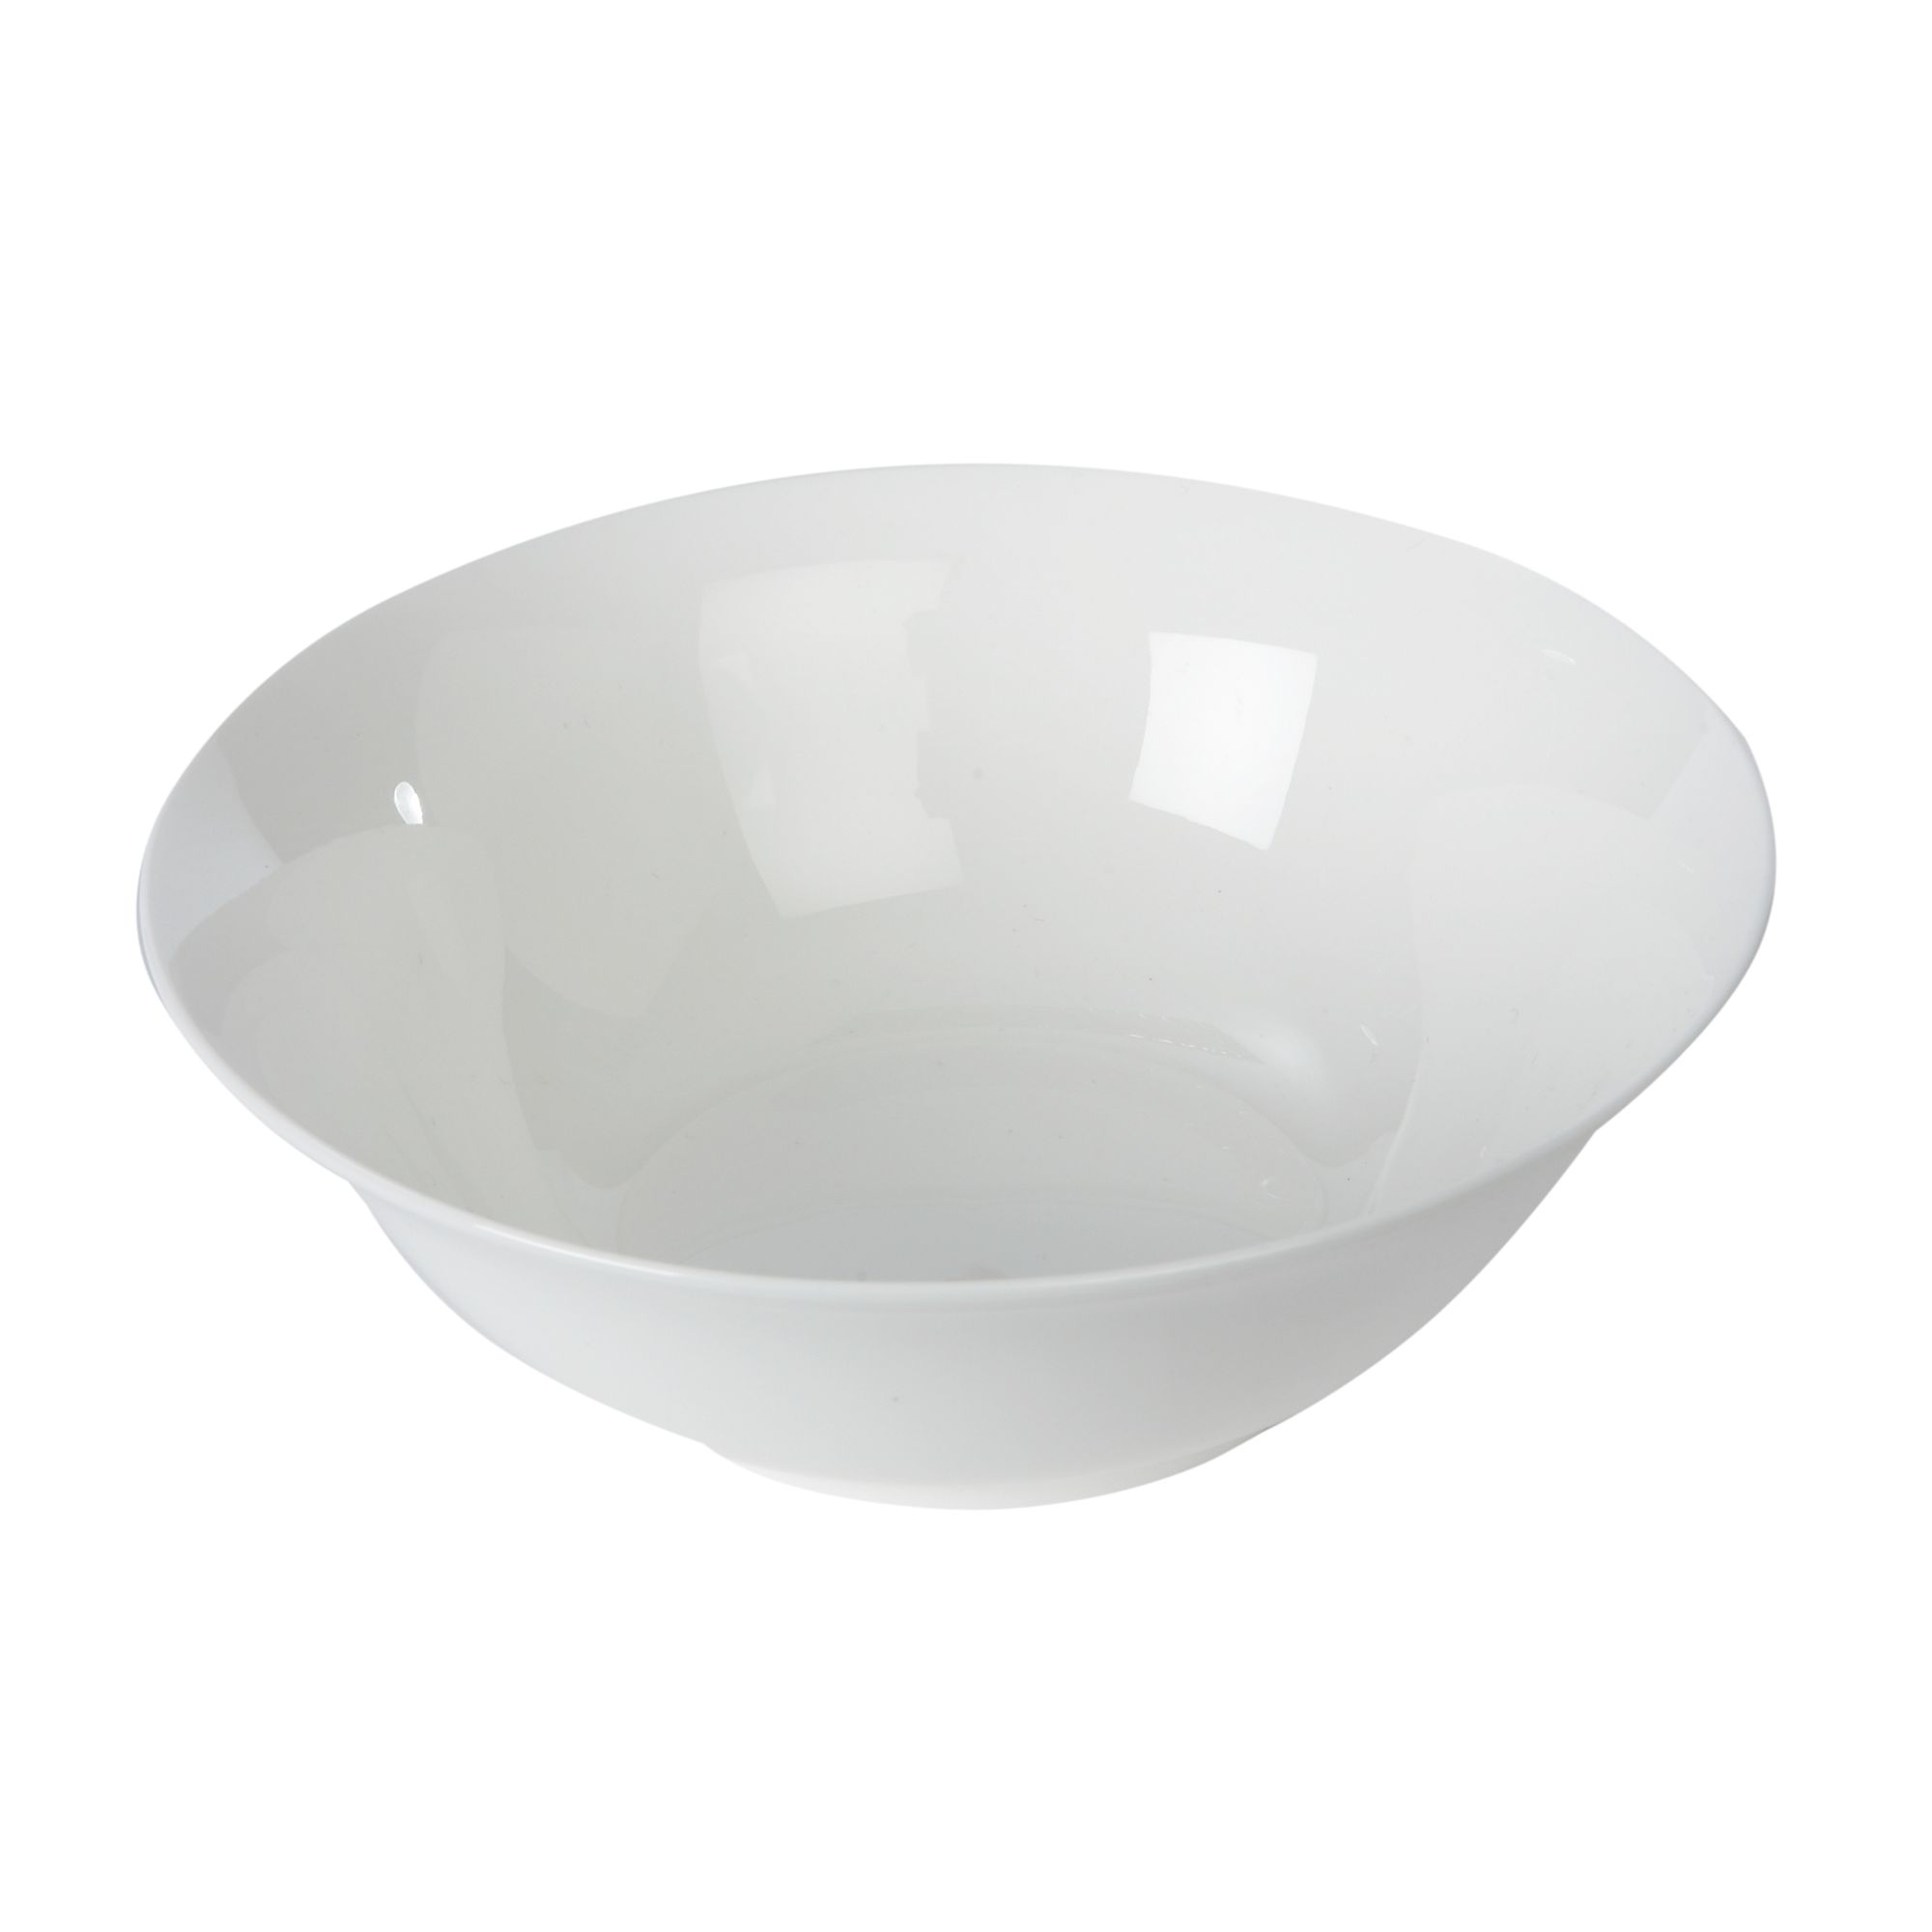 Eternal cereal bowl